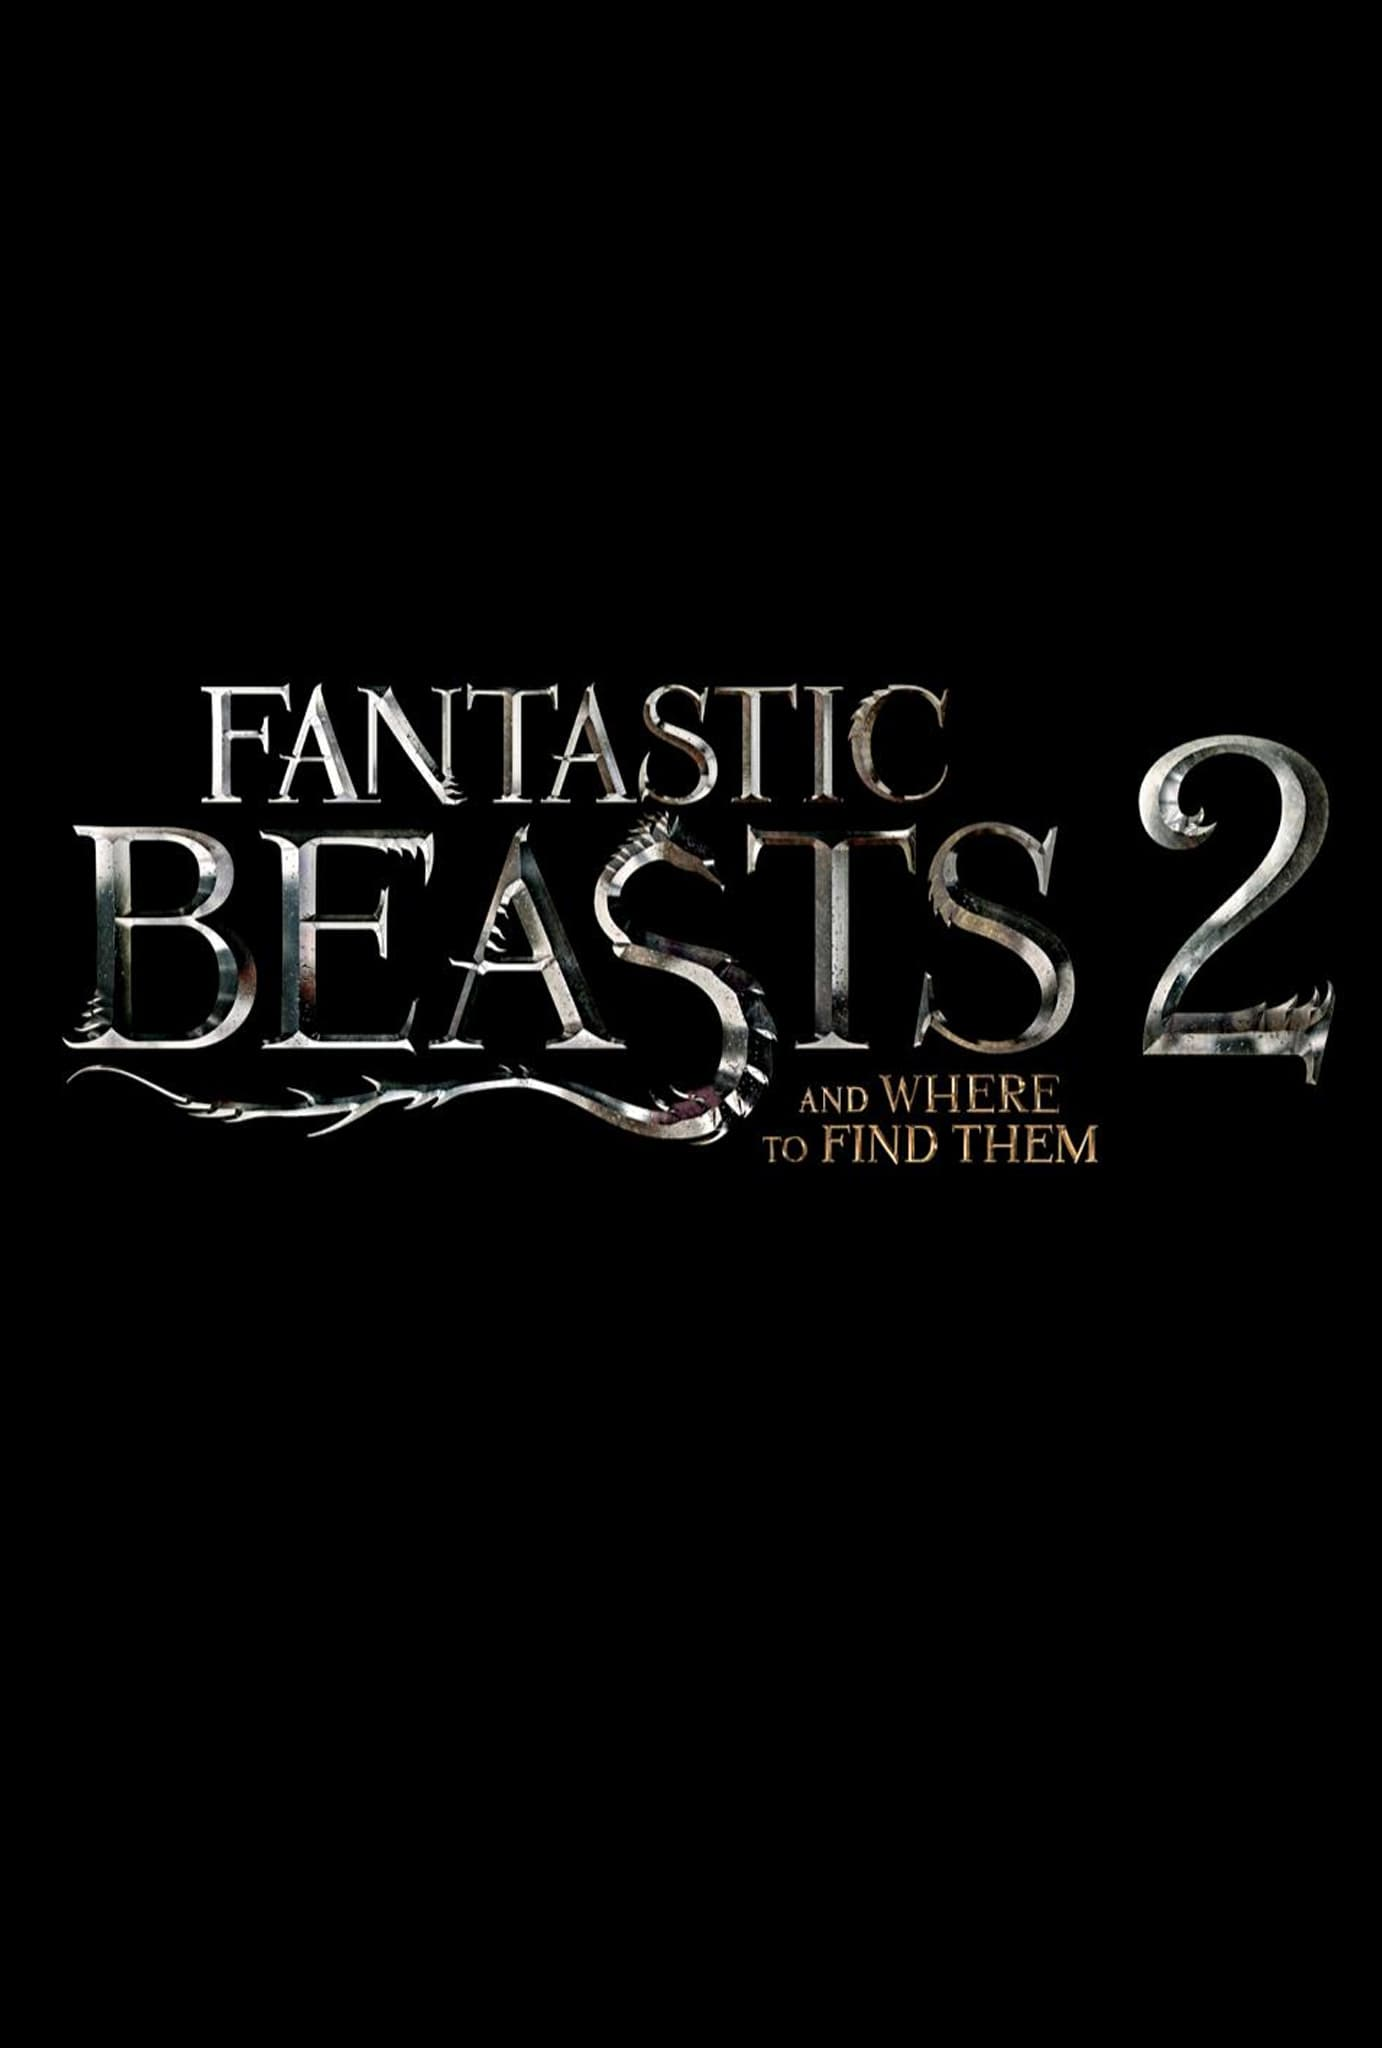 Poster and image movie Film Fantastic Beasts and Where to Find Them 2 - Fantastic Beasts and Where to Find Them 2 - Fantastic Beasts and Where to Find Them 2 -  2018